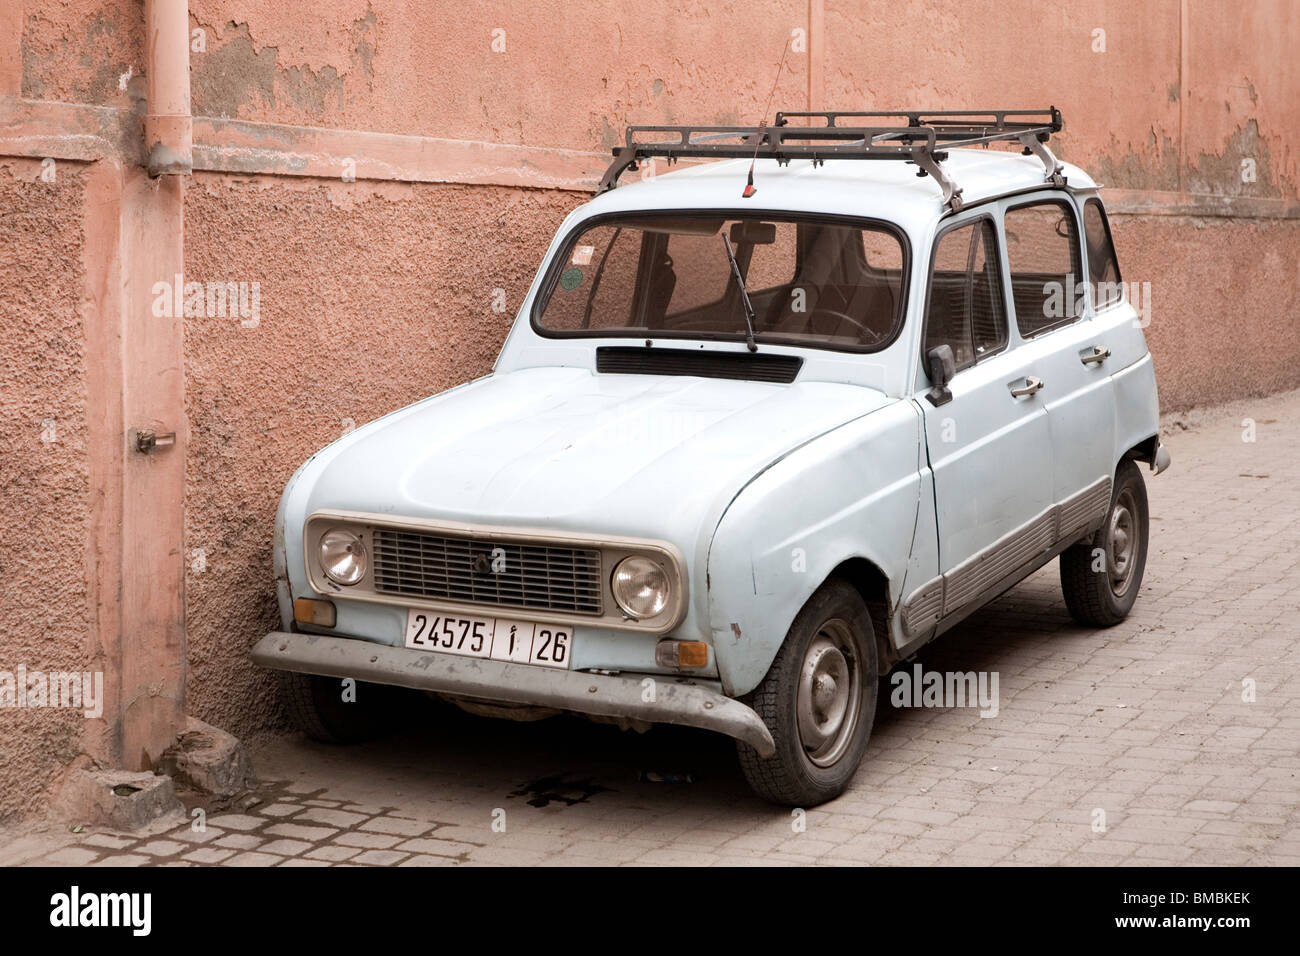 old renault 4 car parked in street in the medina marrakesh morocco stock photo royalty free. Black Bedroom Furniture Sets. Home Design Ideas